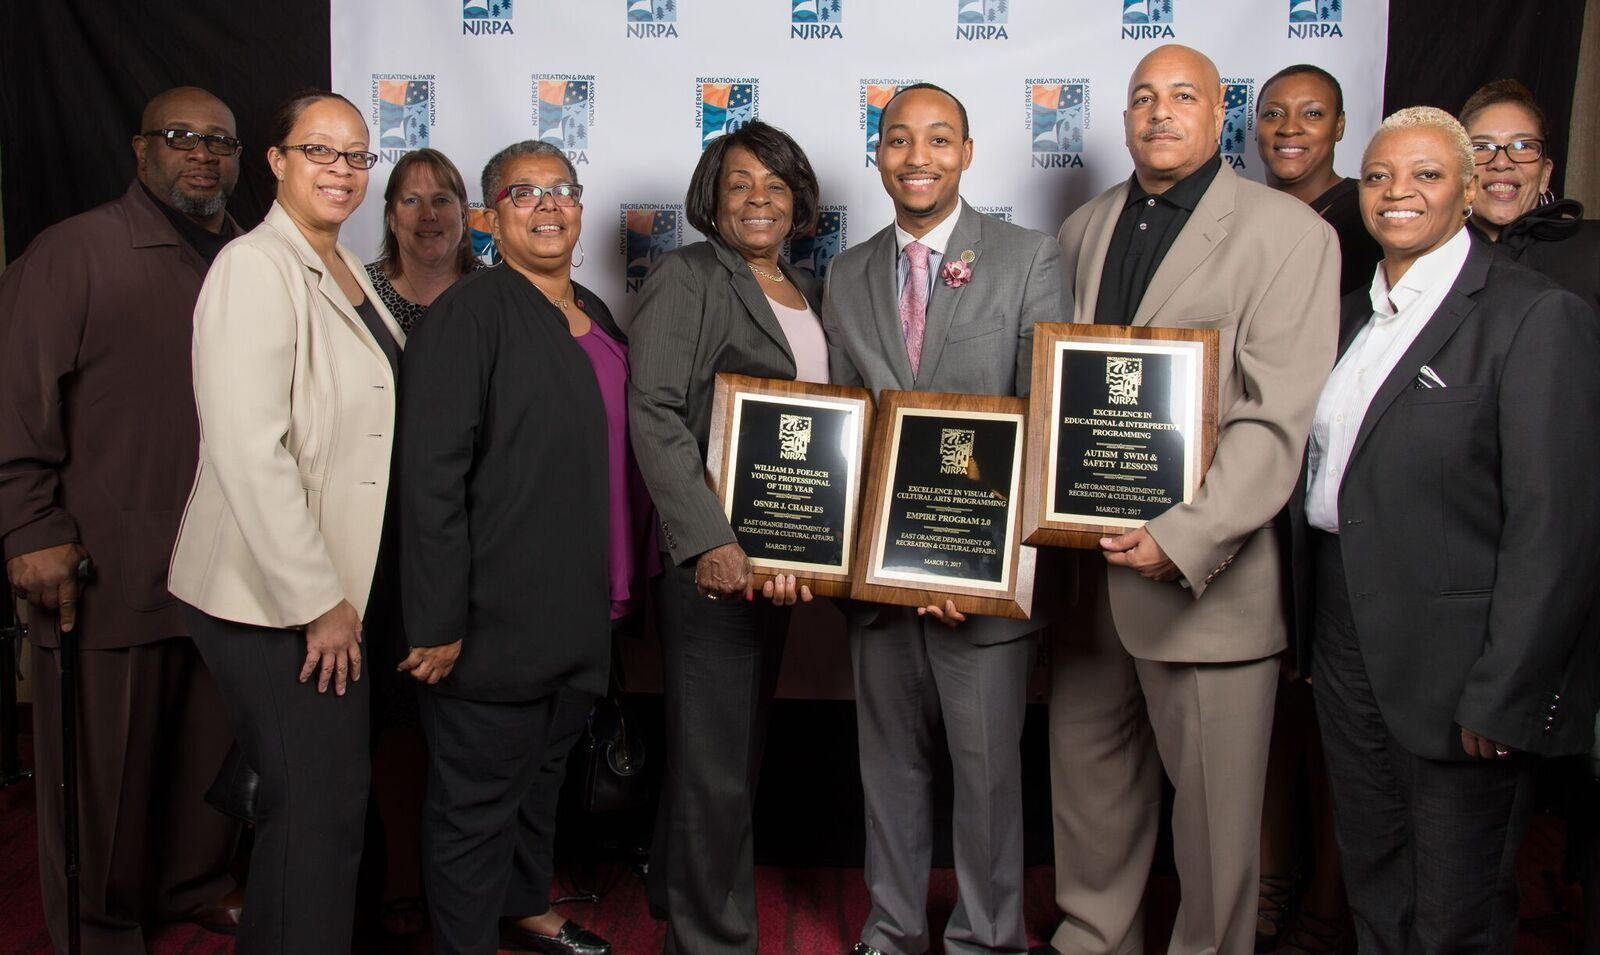 Recreation Dept Receives 3 Top NJRPA Awards